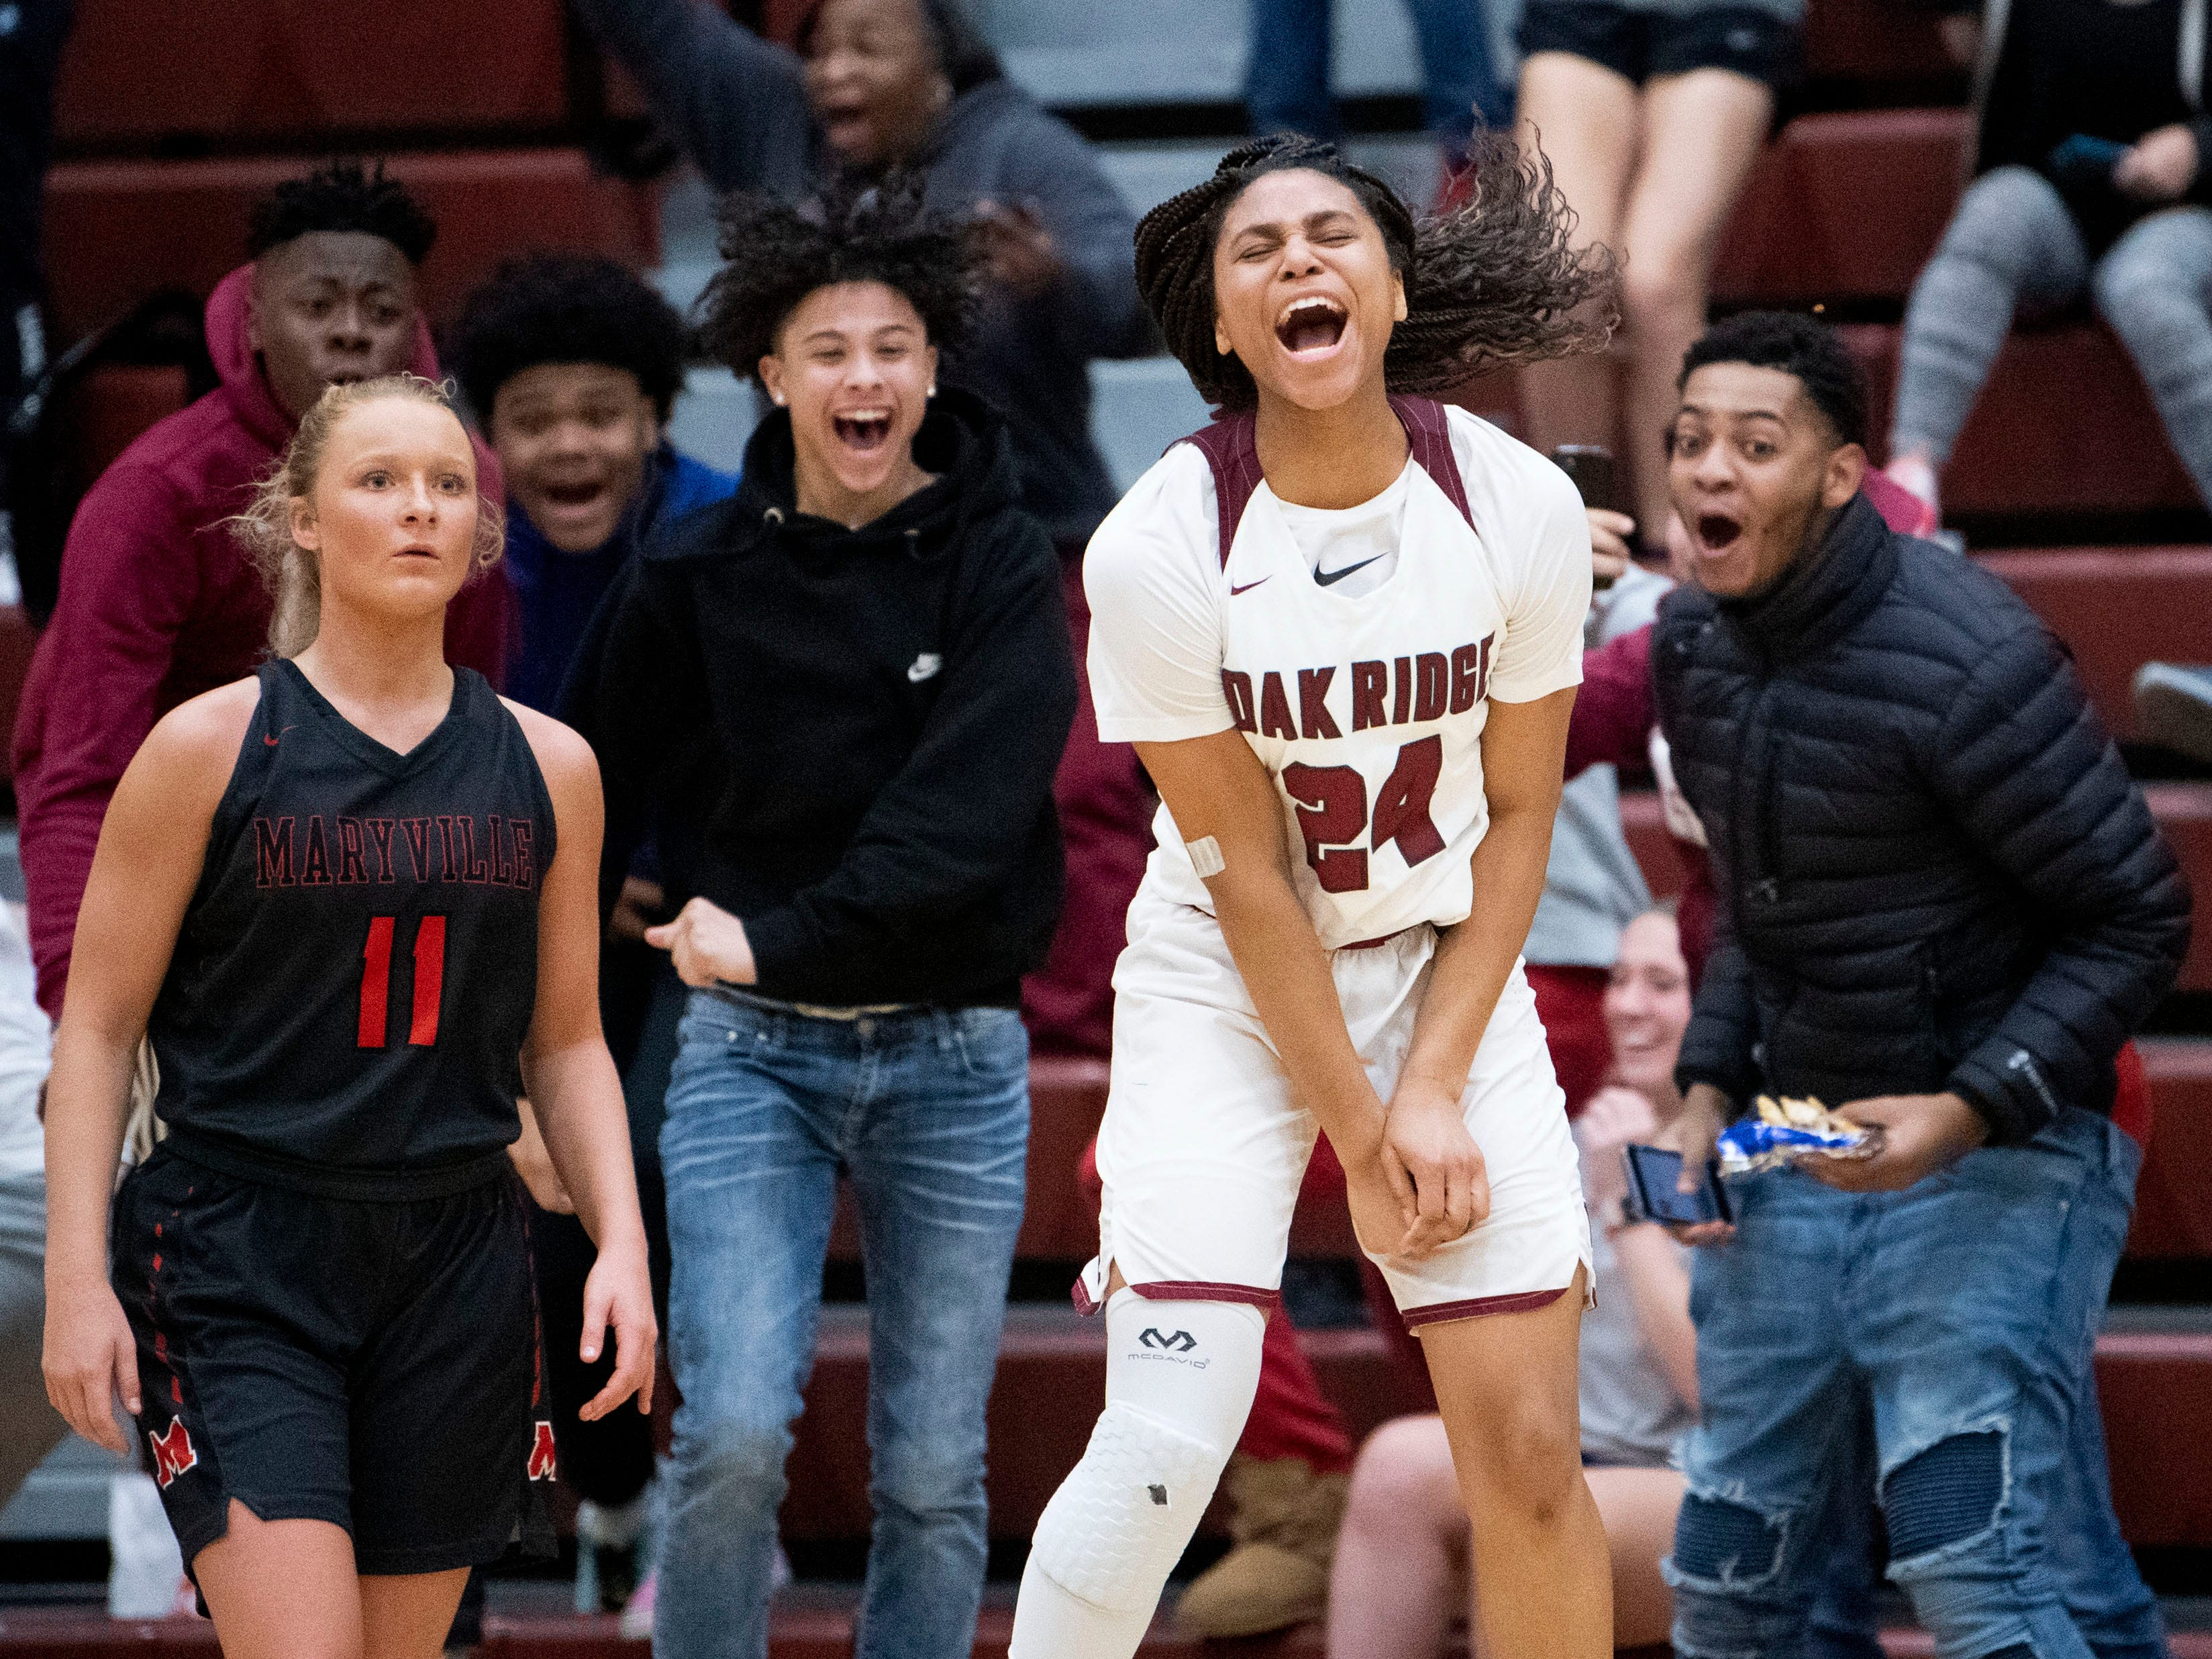 Oak Ridge's Jada Guinn (24) and fans erupt in celebration as her 3-point buzzer beater secures a 53-50 win against Maryville in the Region 2-AAA tournament on Wednesday, February 27, 2019.